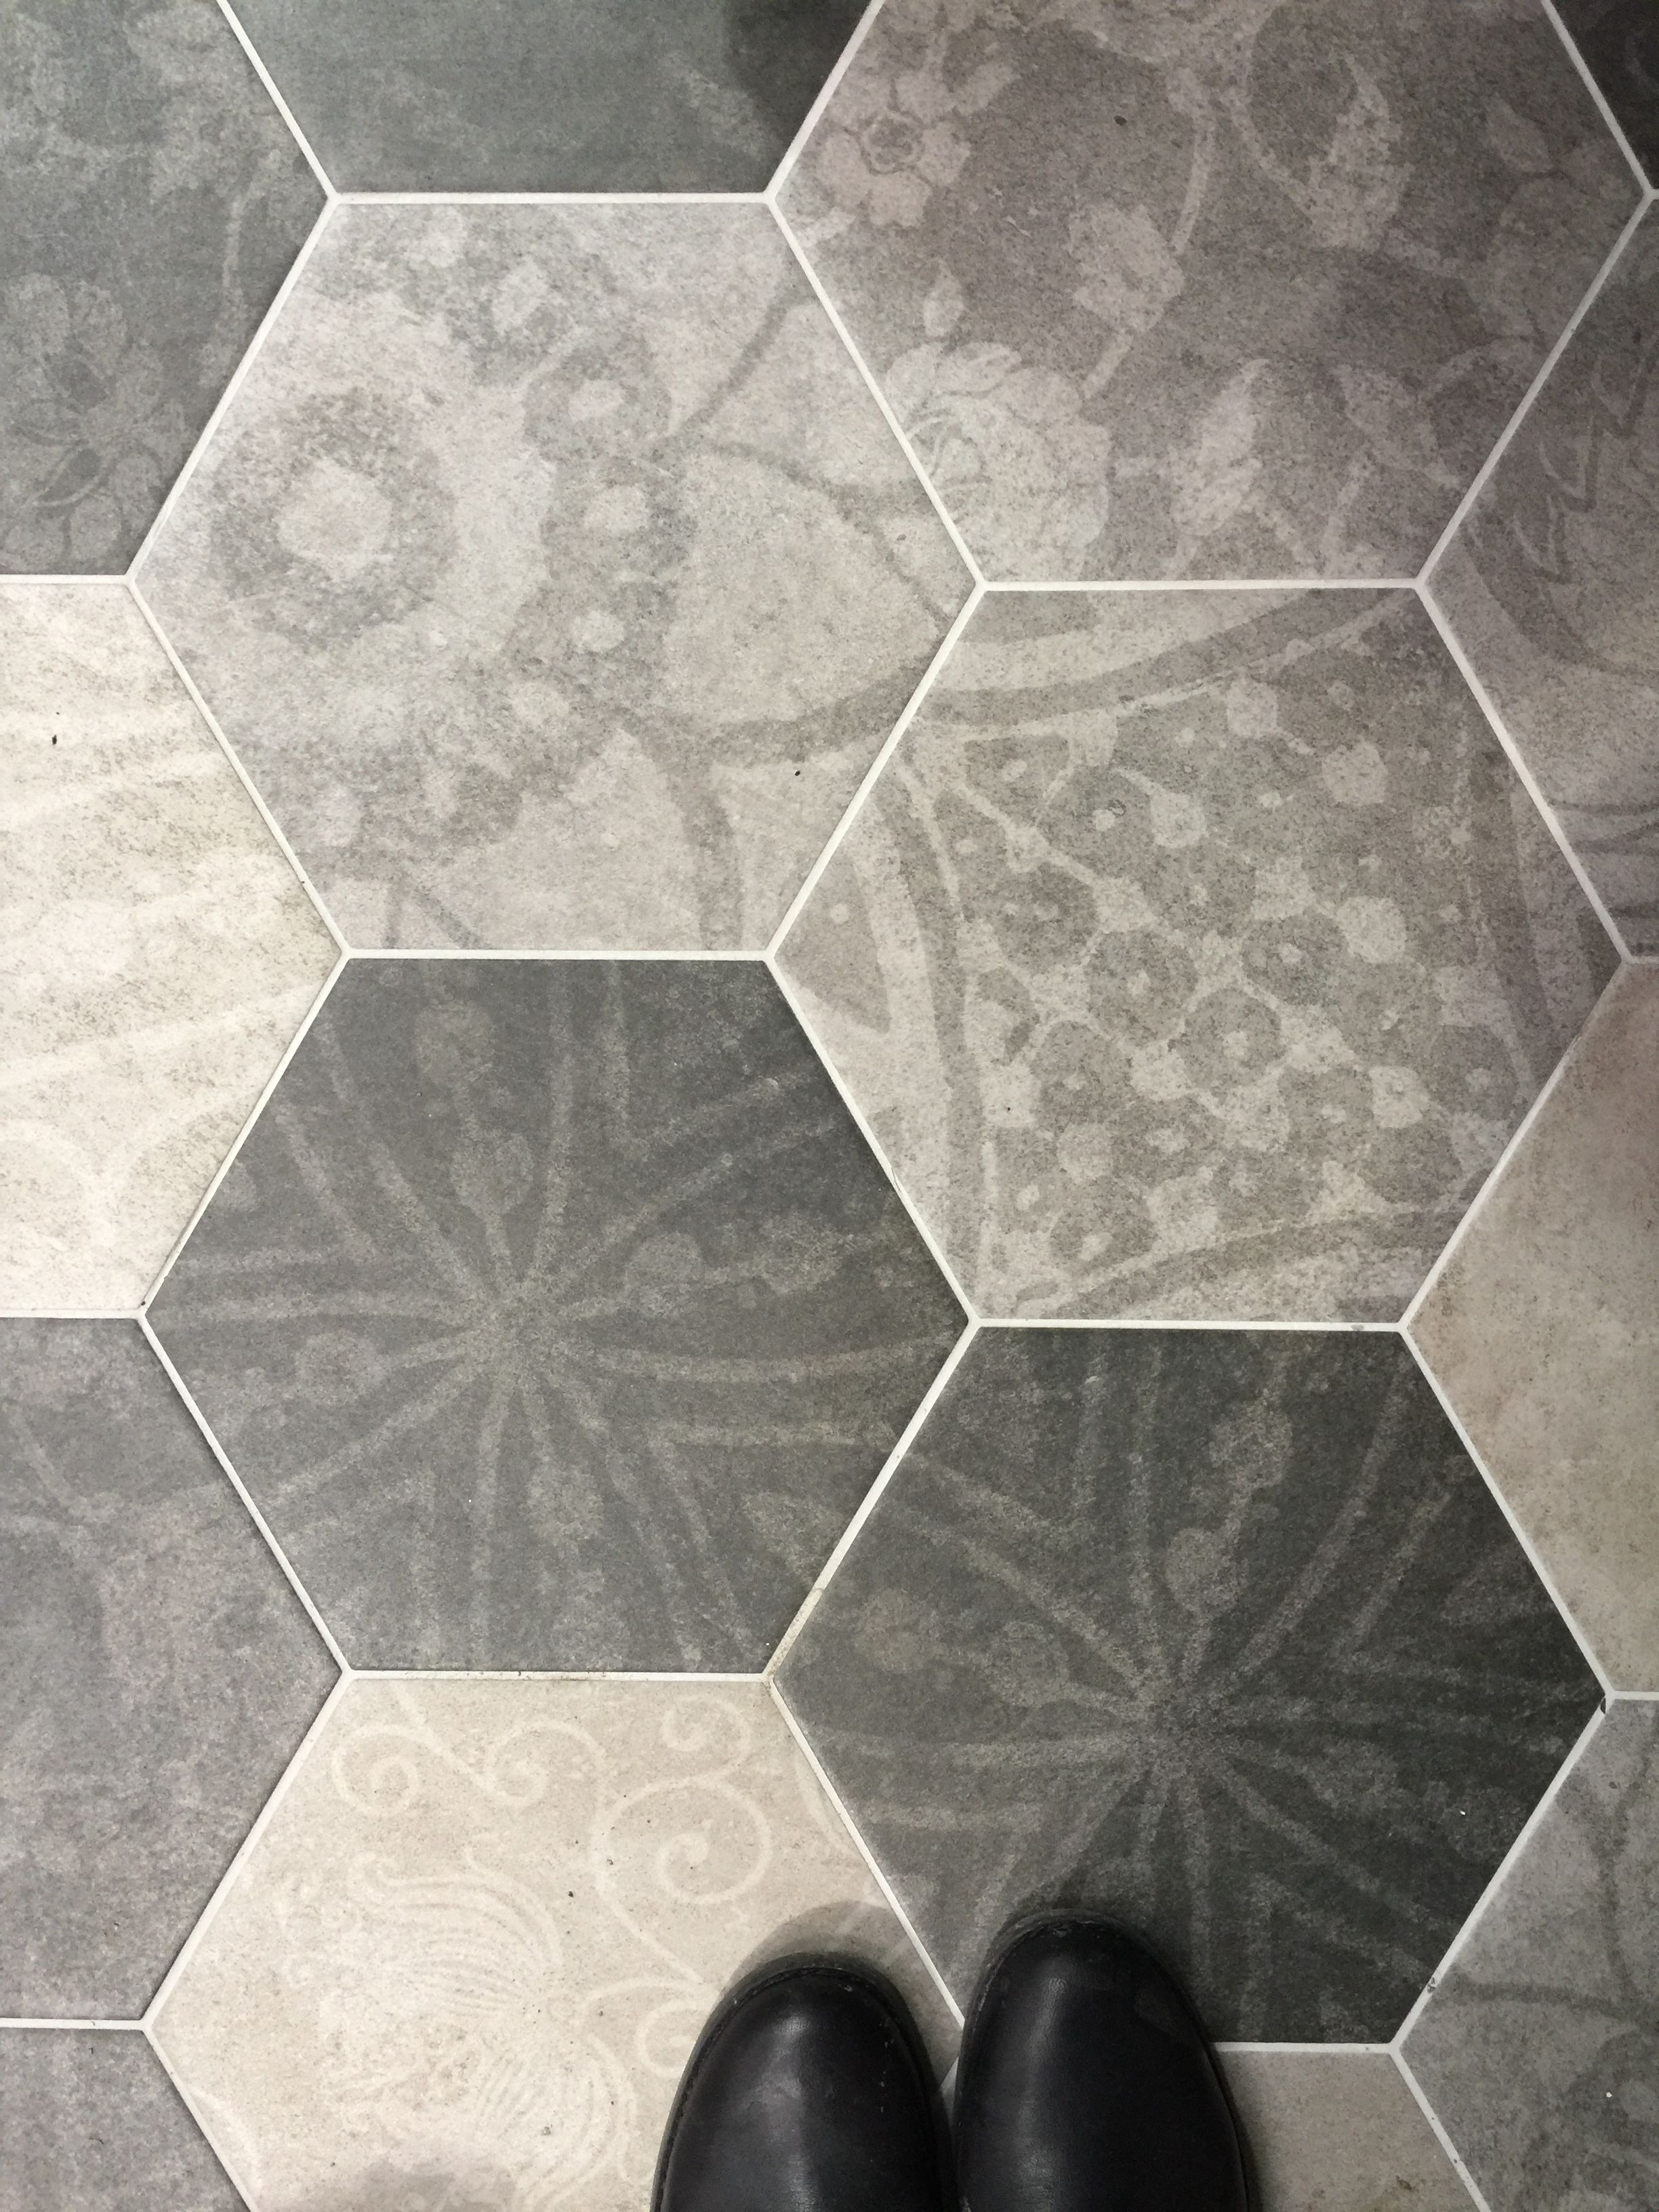 Grey hexagon patterned floor tiles | Tiles in 2018 | Pinterest ...